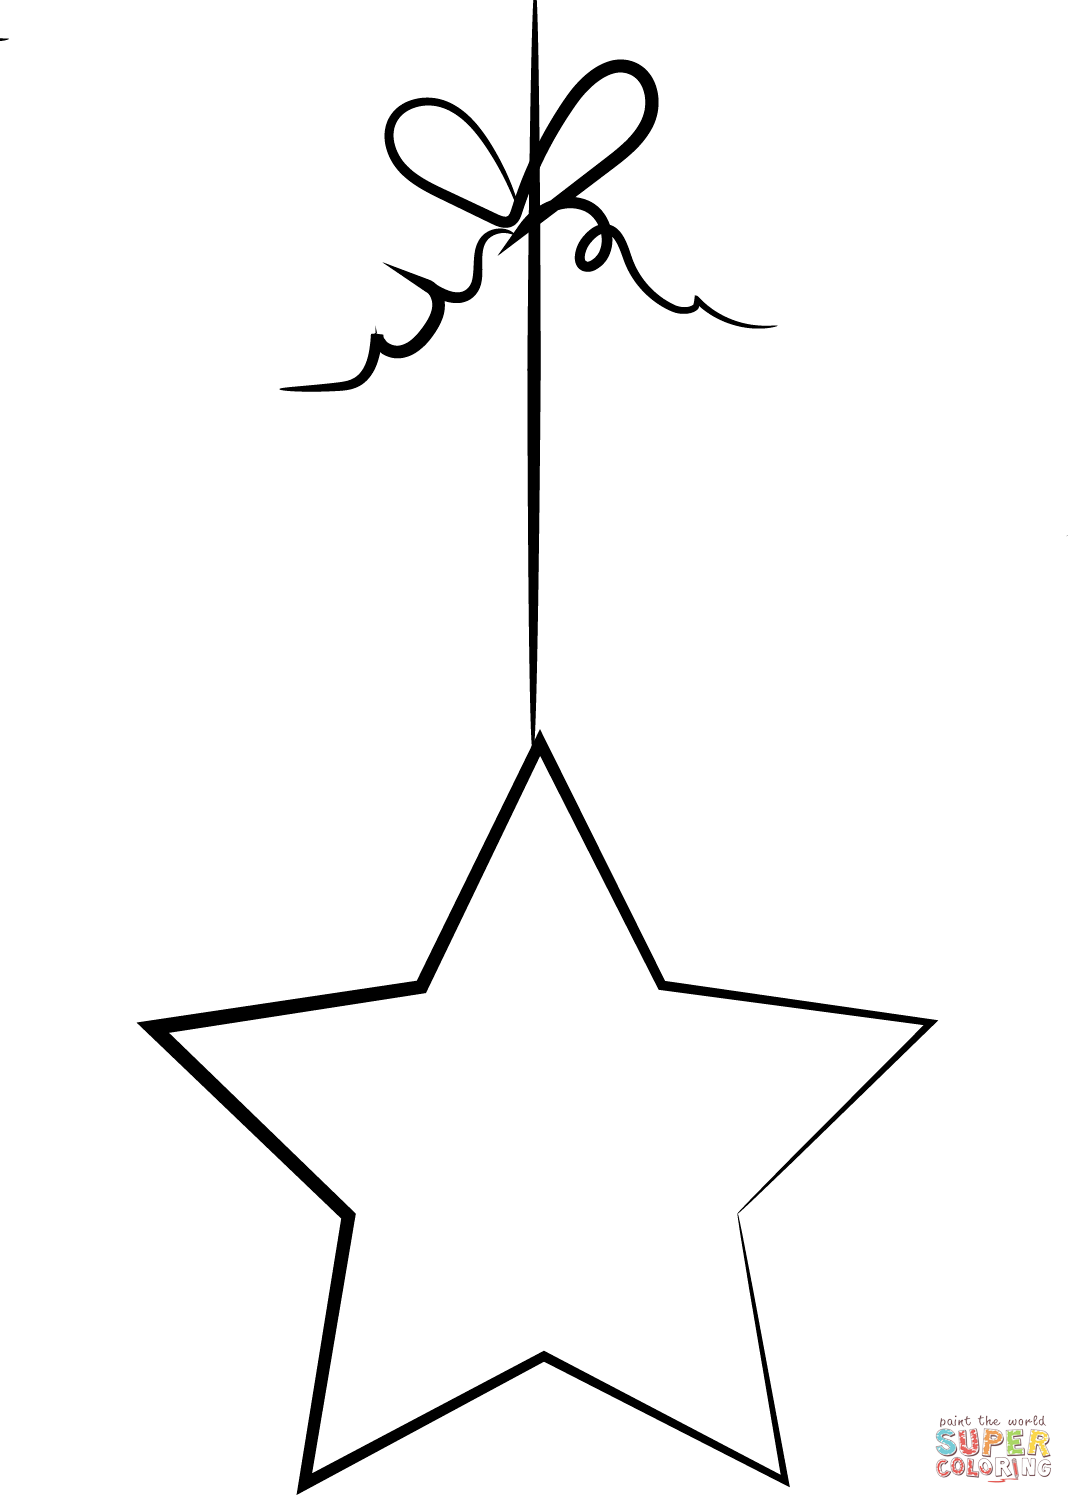 Star Ornament Coloring Page Free Printable Coloring Pages